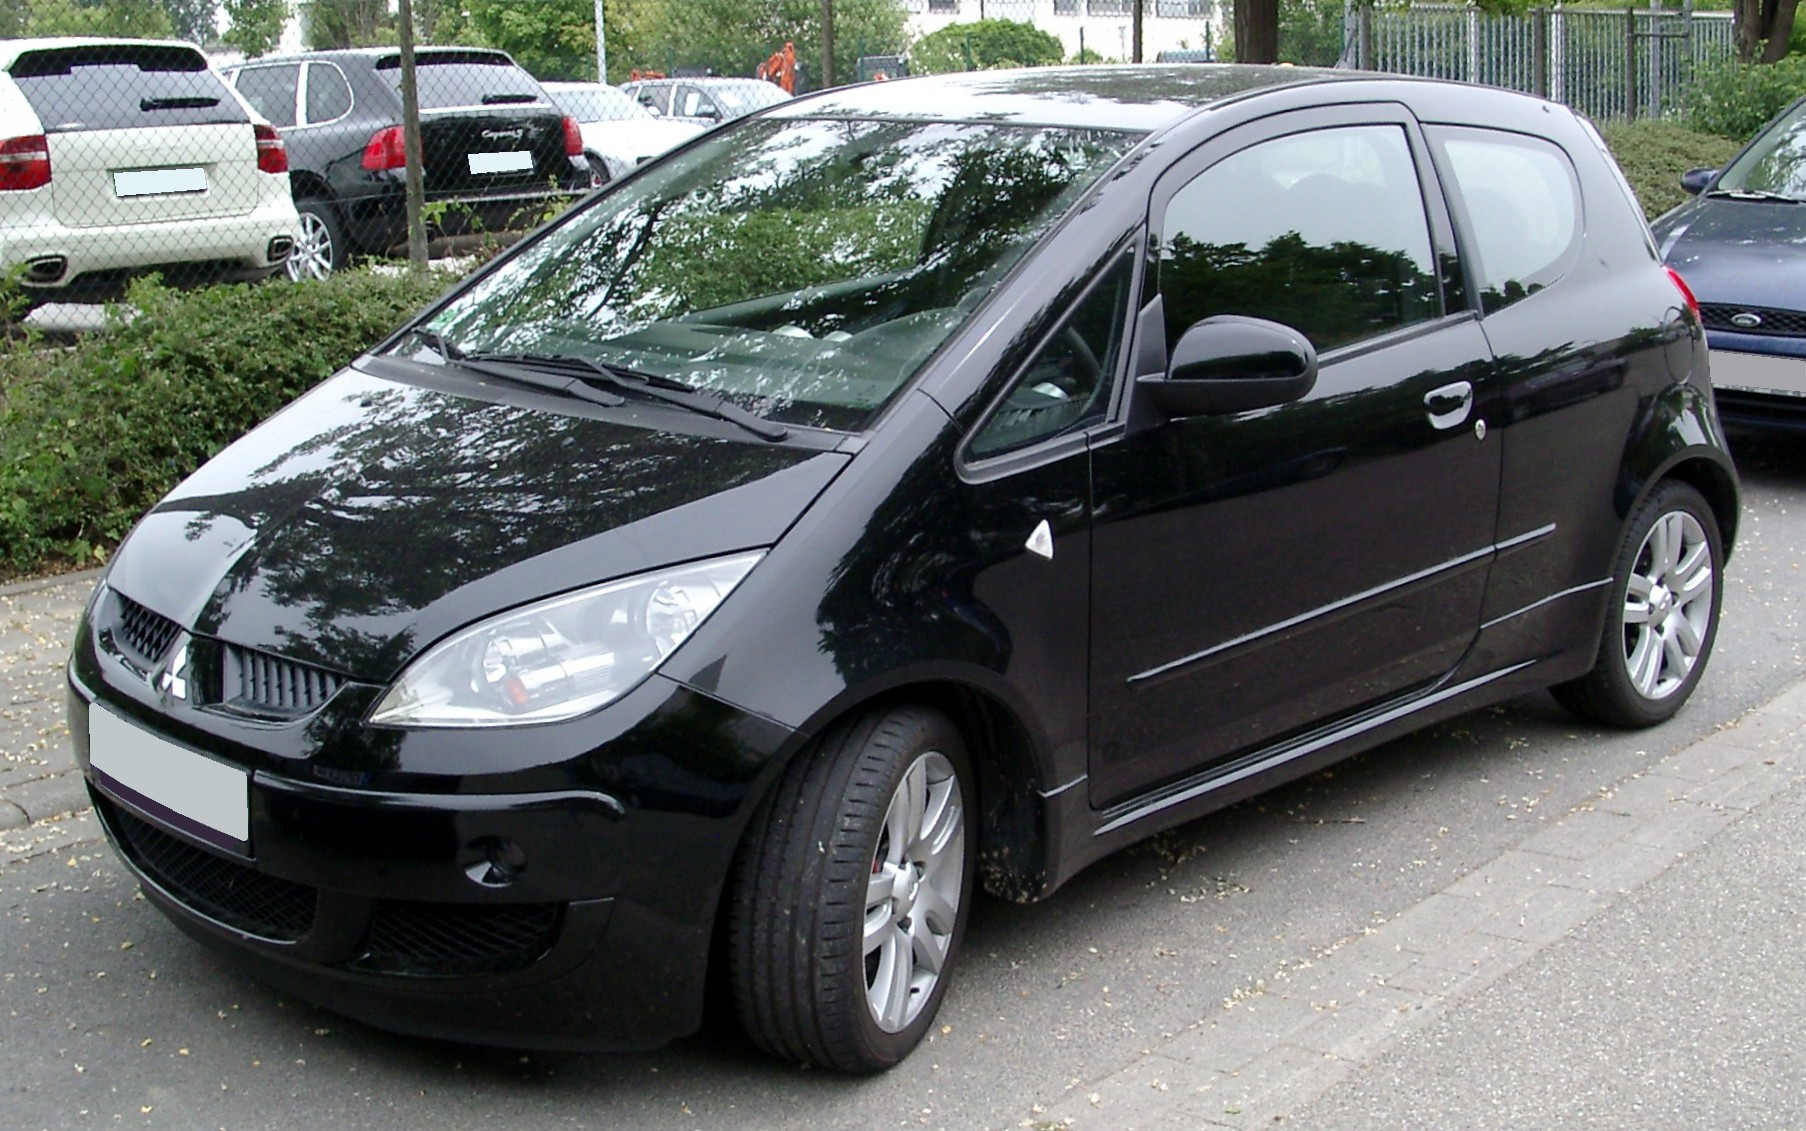 Mitsubishi Colt Cz3 Technical Details History Photos On